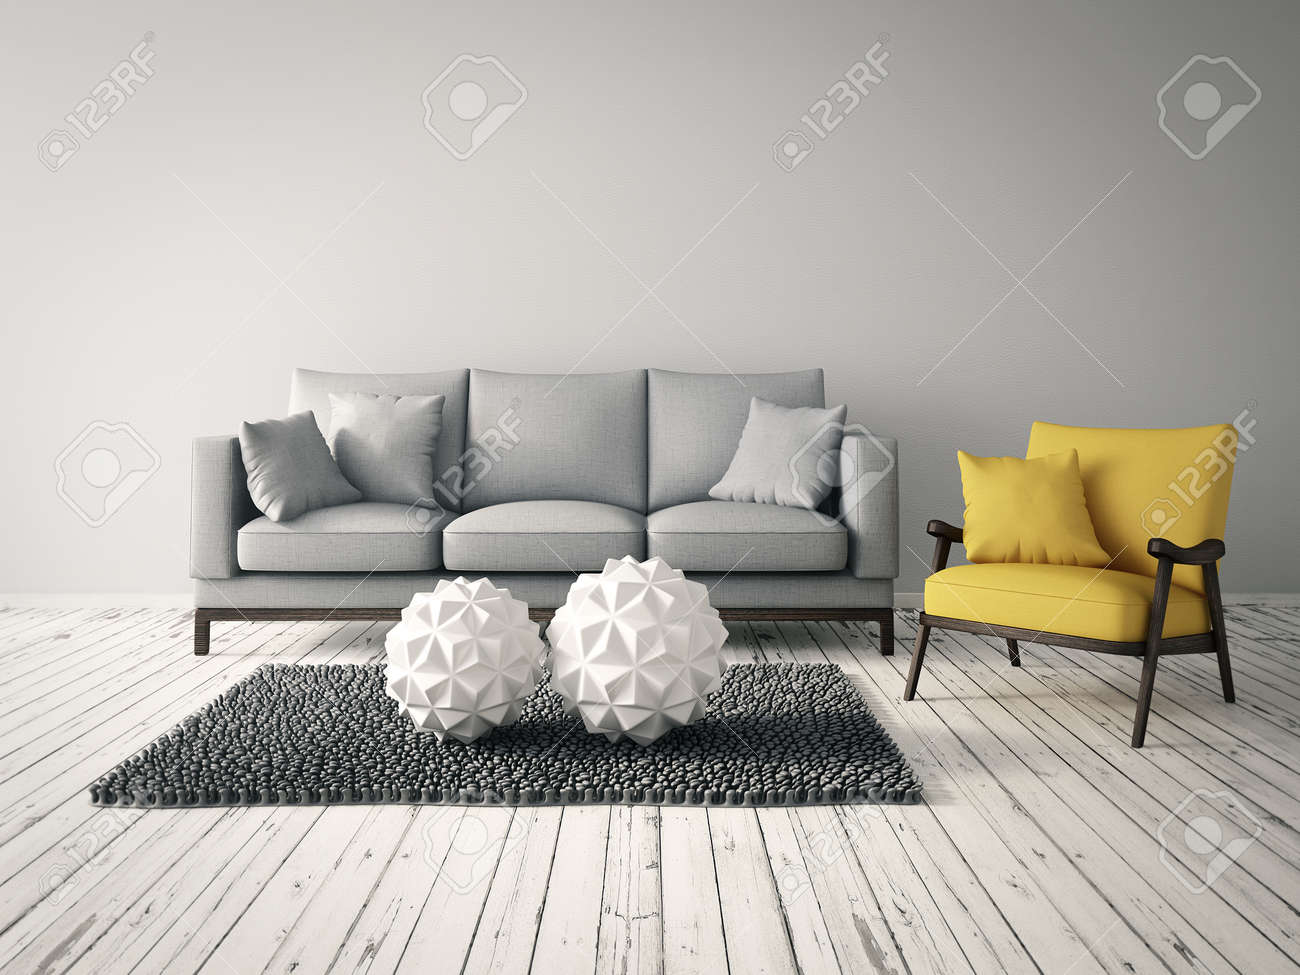 modern interior room with a beautiful furniture - 32773941